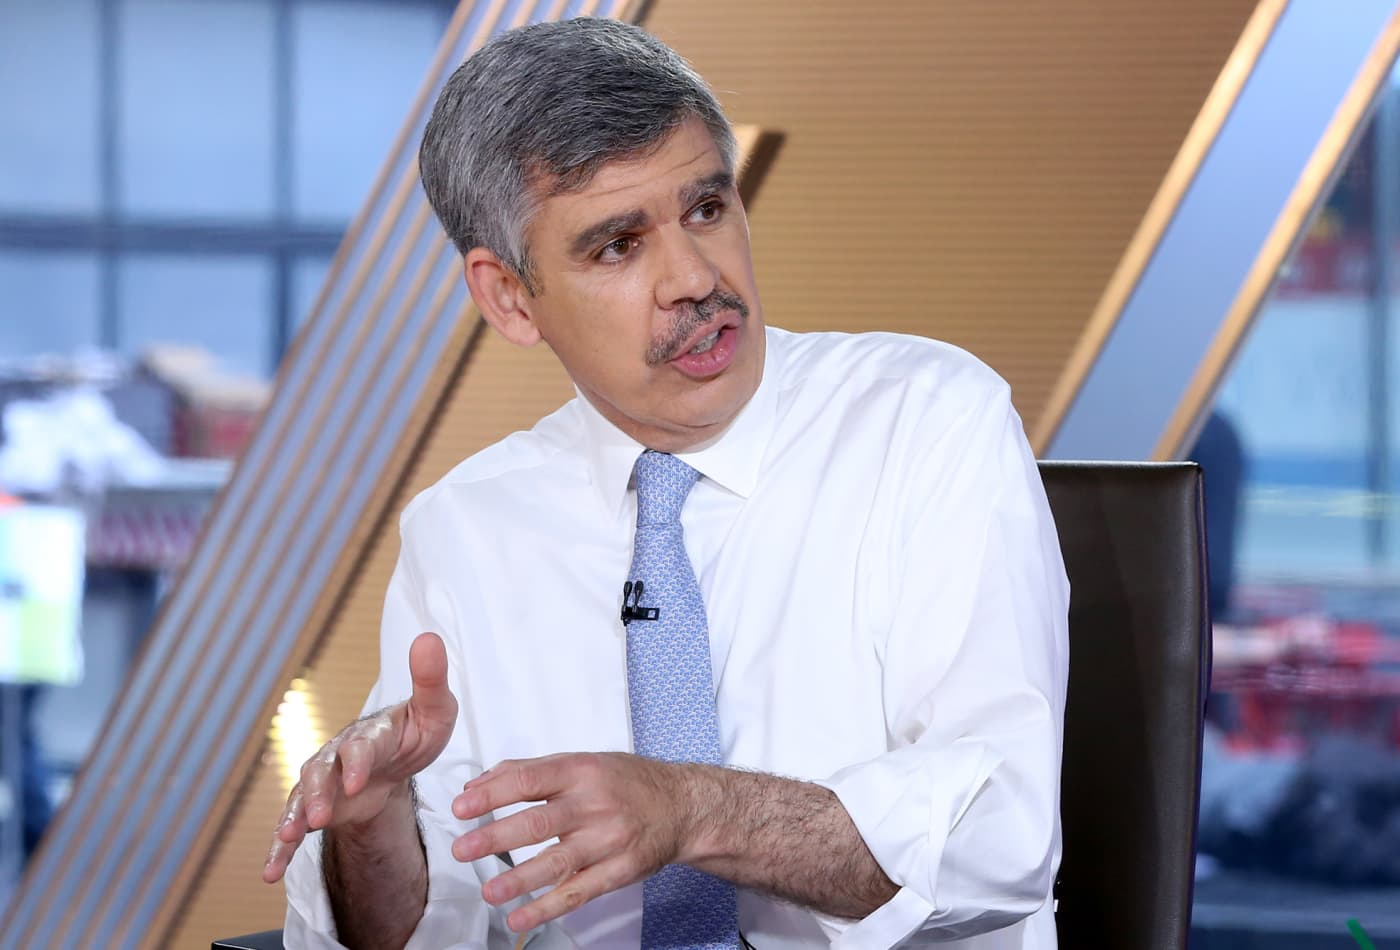 'This is different' — El-Erian warns against buying coronavirus pullback fears in stock market